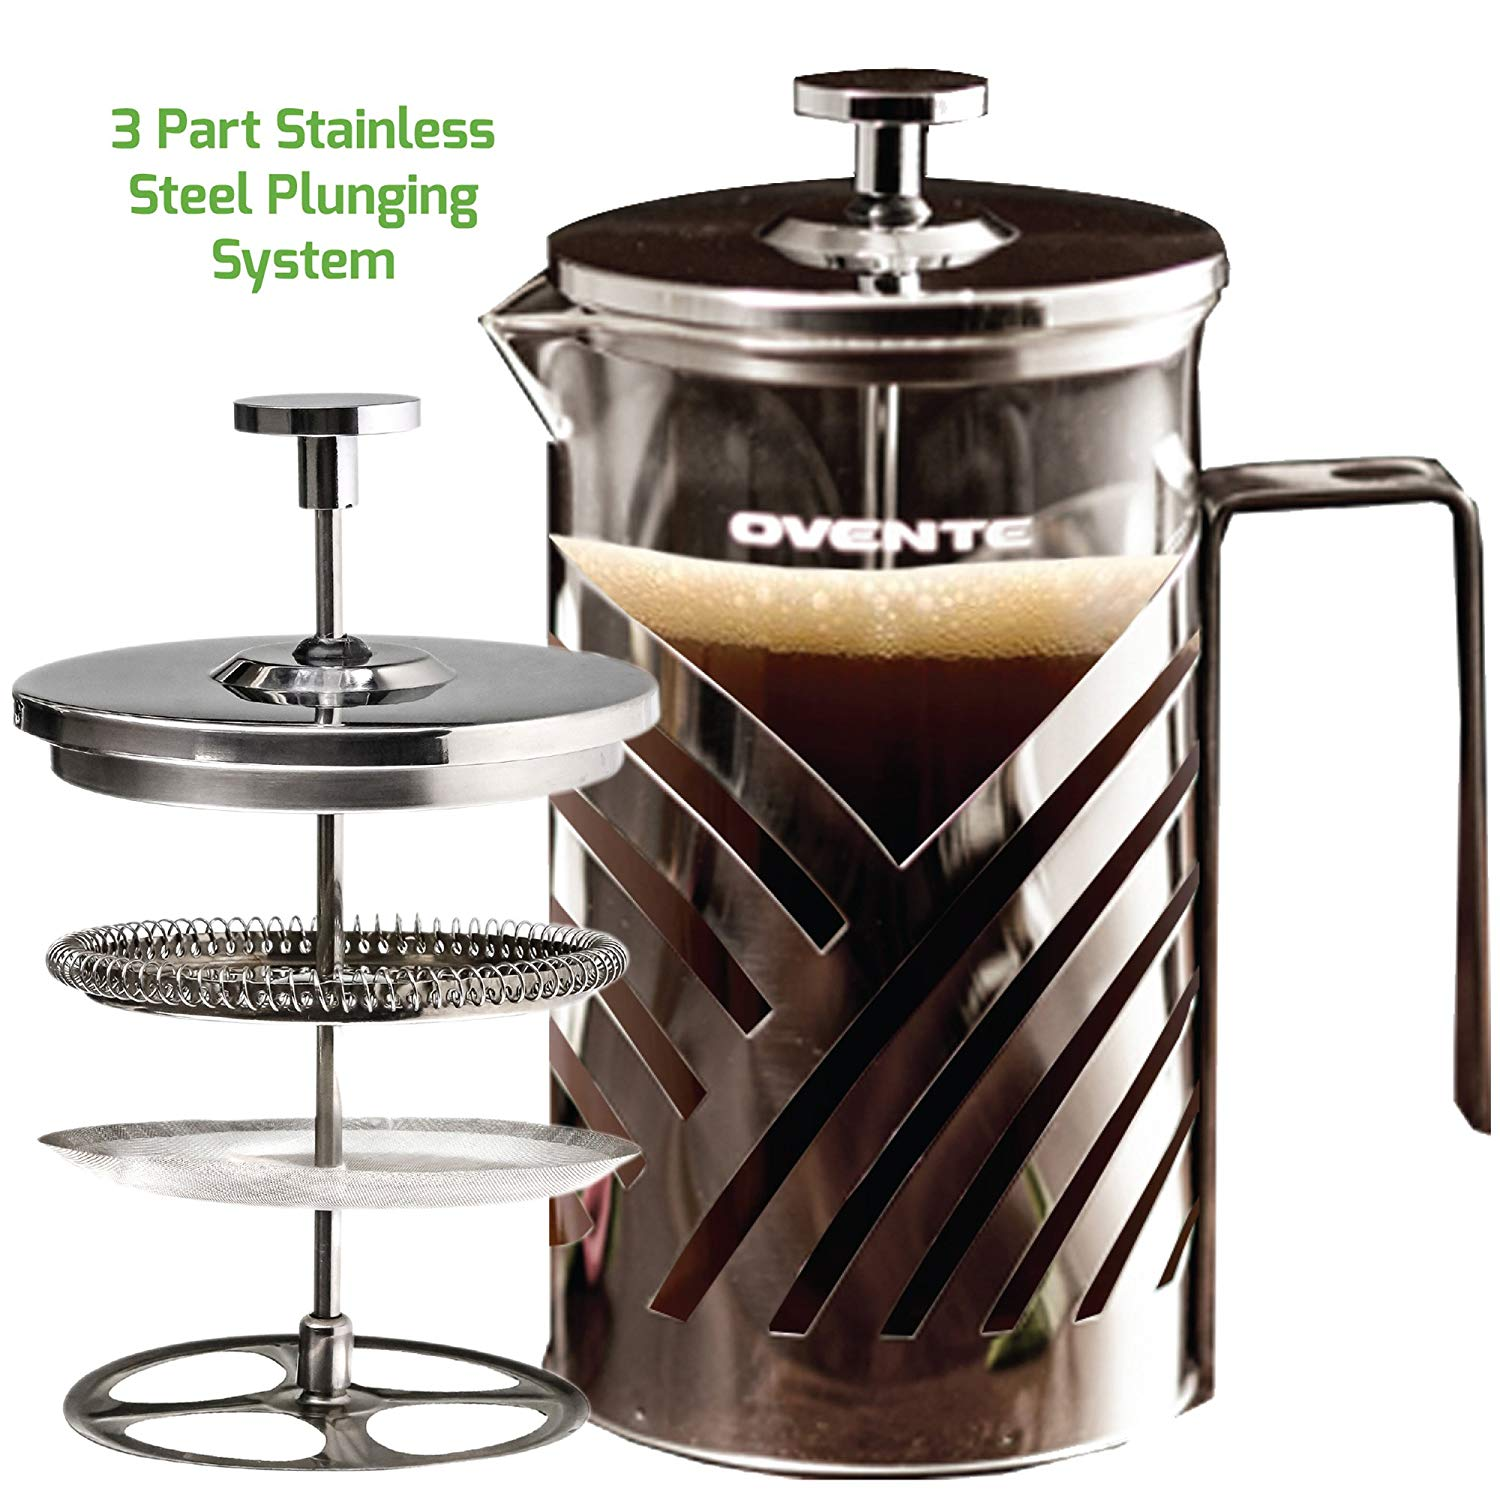 Ovente French Press Cafeti?re Coffee and Tea Maker, High-Grade Stainless Steel, Nickel Brushed, Heat-Resistant Borosilicate Glass, 27 oz (800 ml), 6 cup, Dazzling Diagonal Design, FREE Measuring Scoop